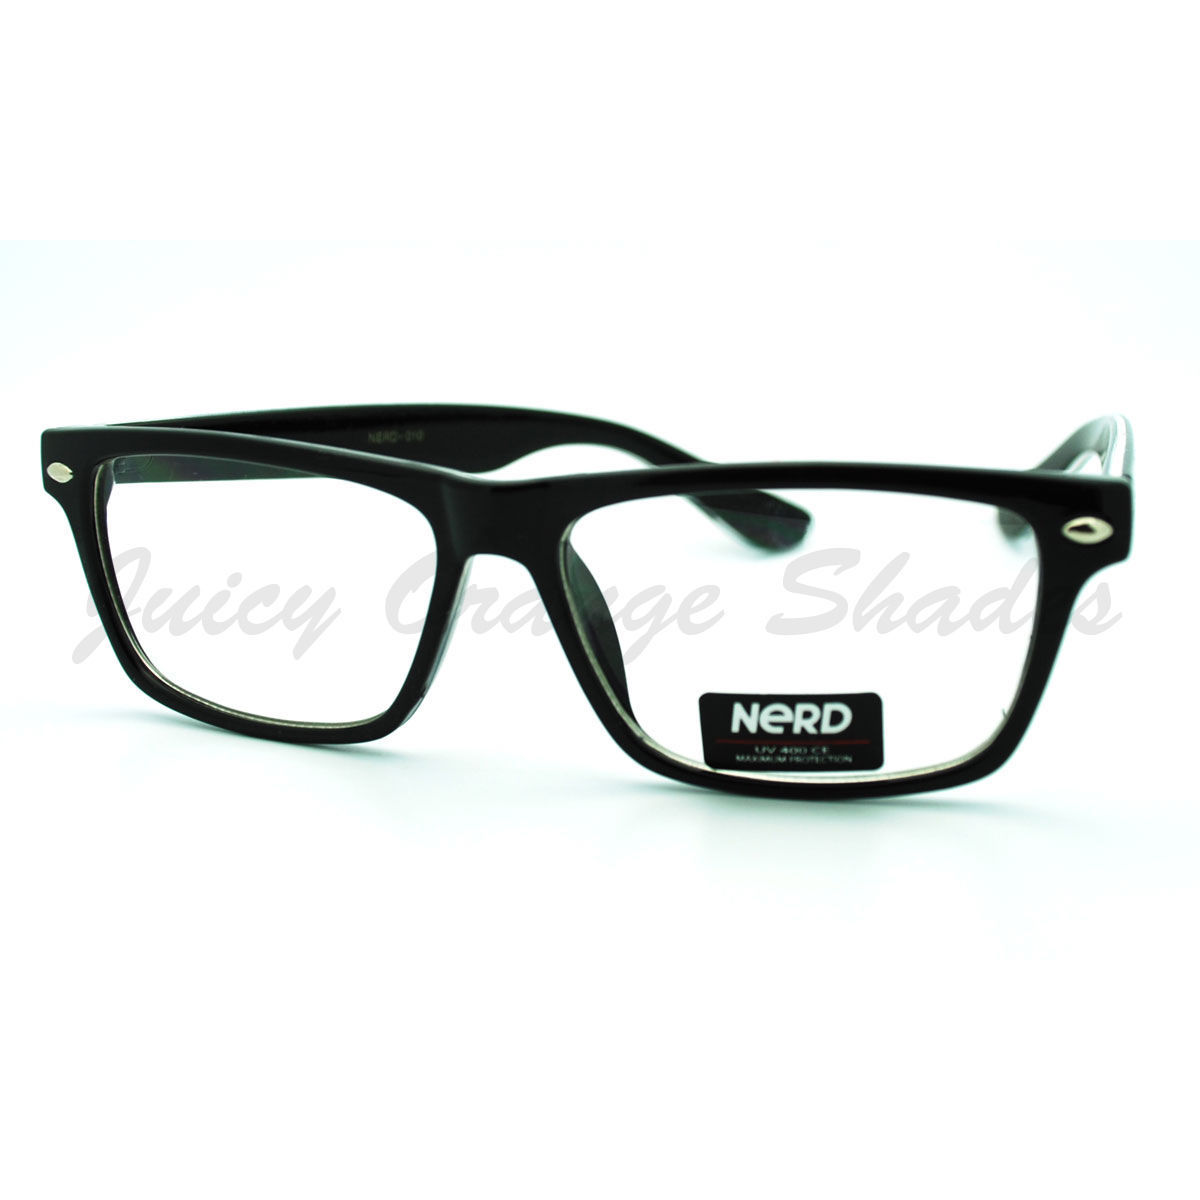 Clear Lens Glasses Rectangular Nerdy Smart Look Optical Frame